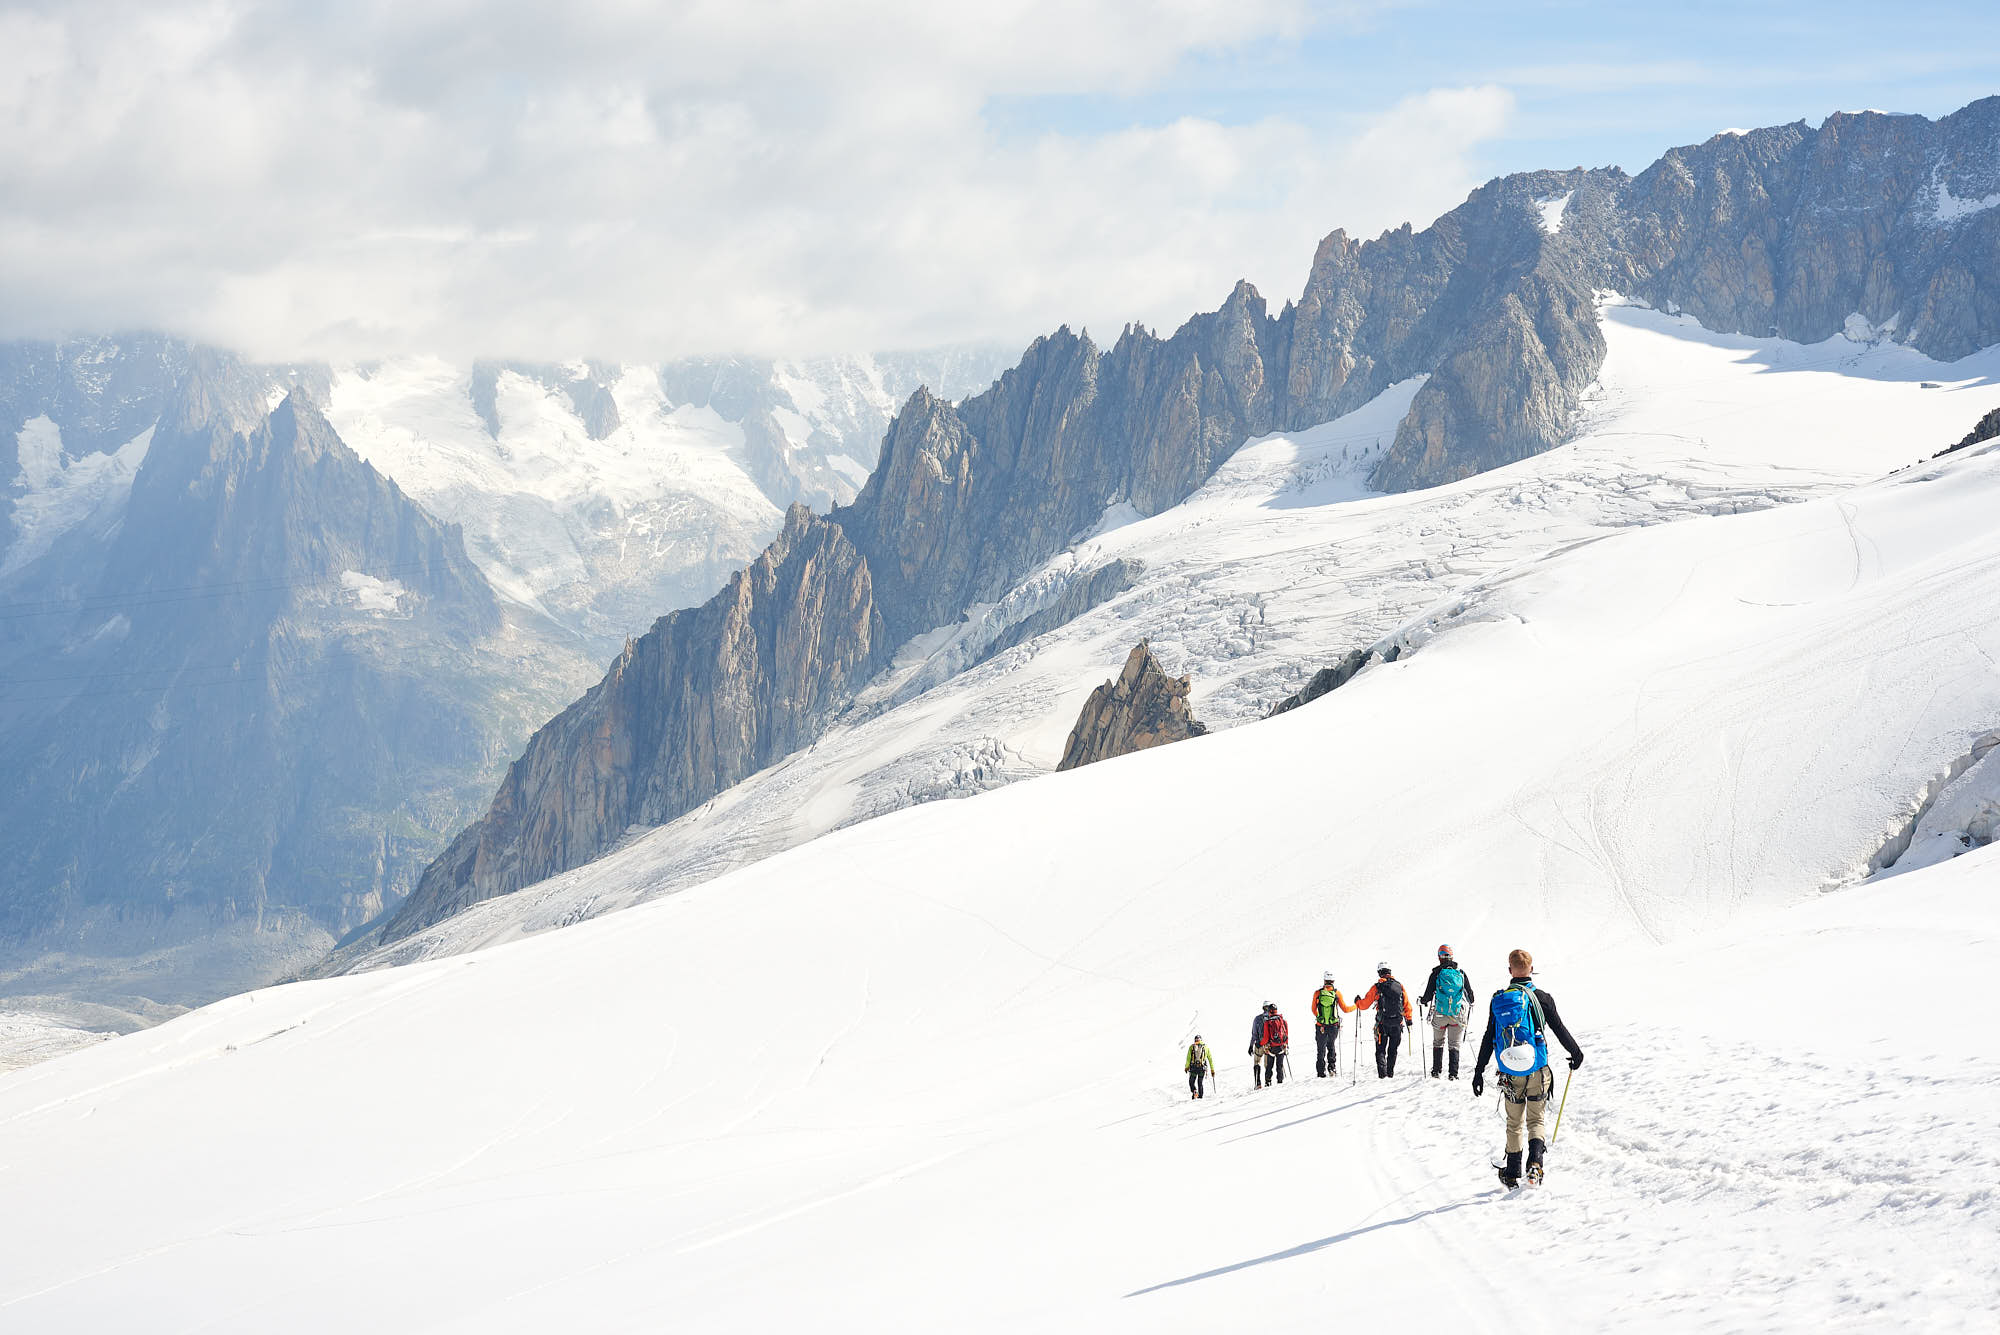 Group of alpinists walking down a snow slope in the Alps